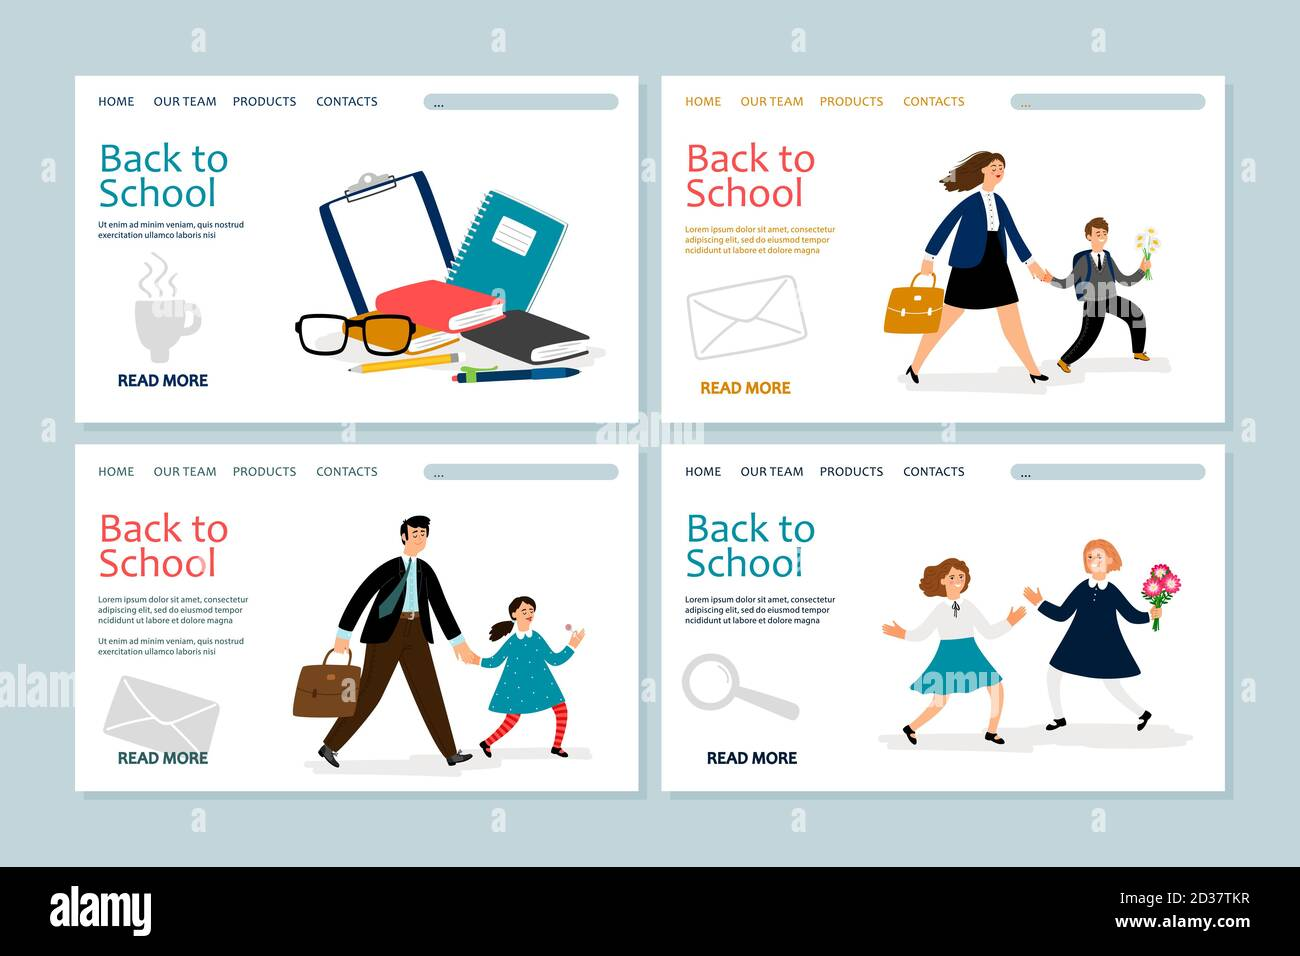 Back to school landing page template. Vector banners with school kids, parents, stationery. Back school, father or mother follow child to education illustration Stock Vector